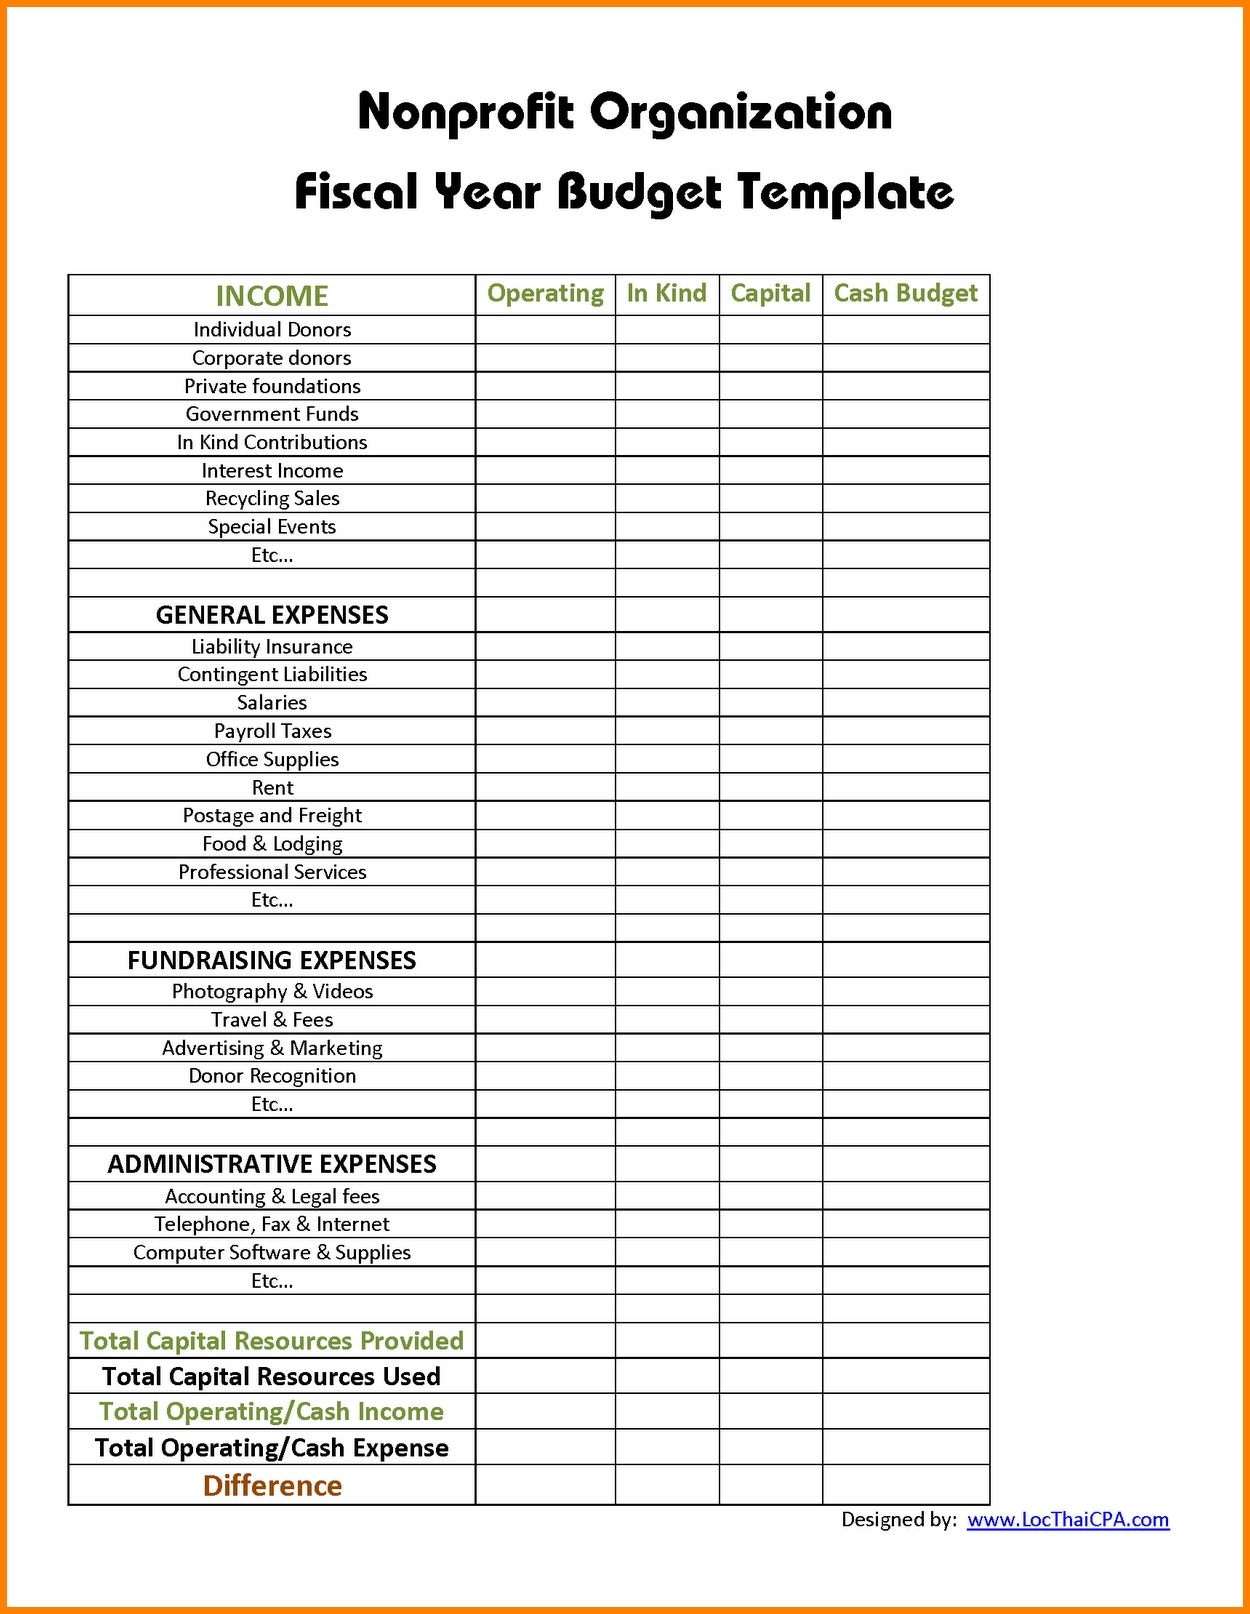 Nonprofit budget template issue see 9 non profit regarding